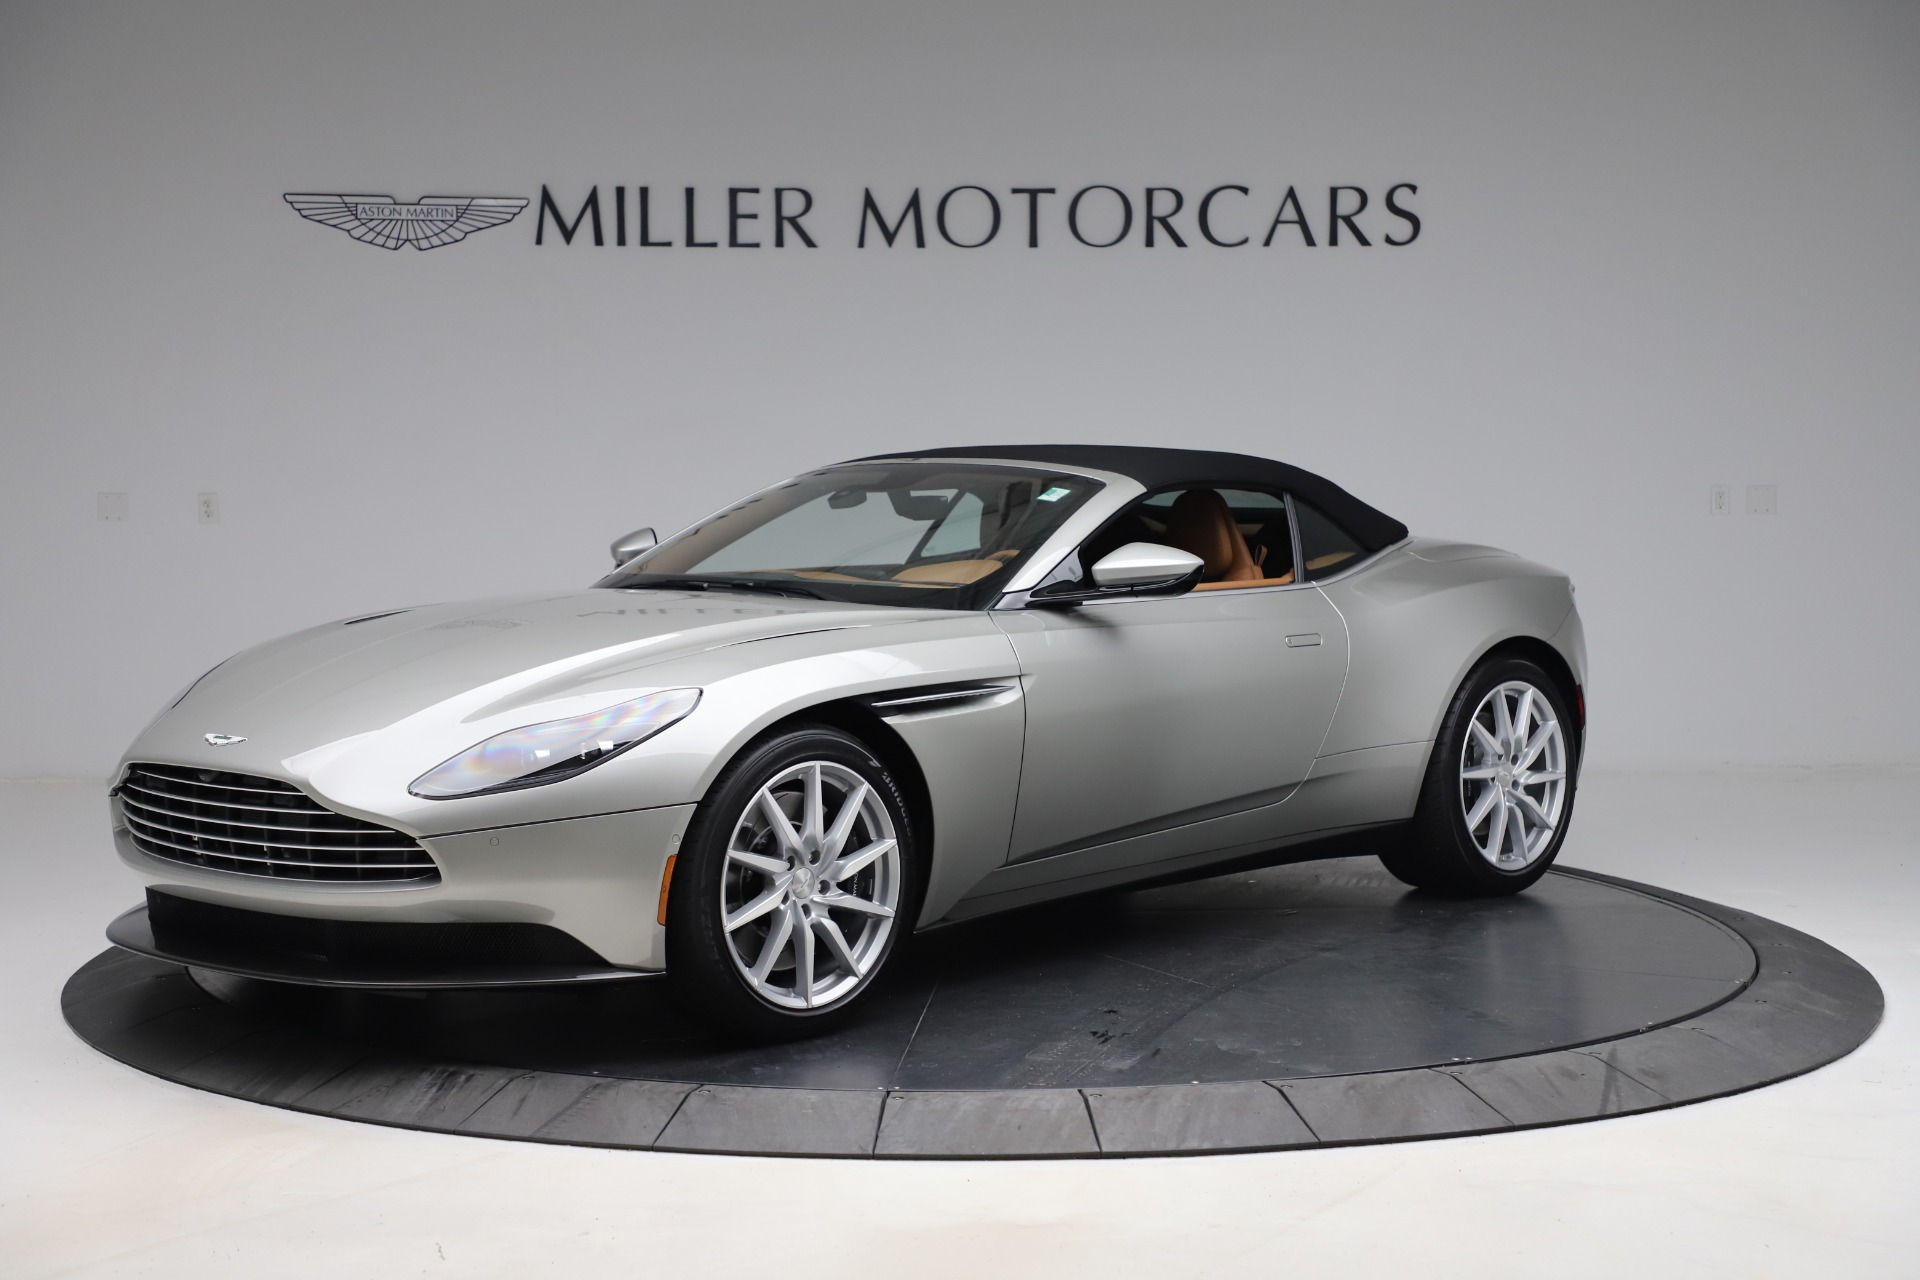 Pre Owned 2020 Aston Martin Db11 Volante Convertible For Sale Miller Motorcars Stock 7767